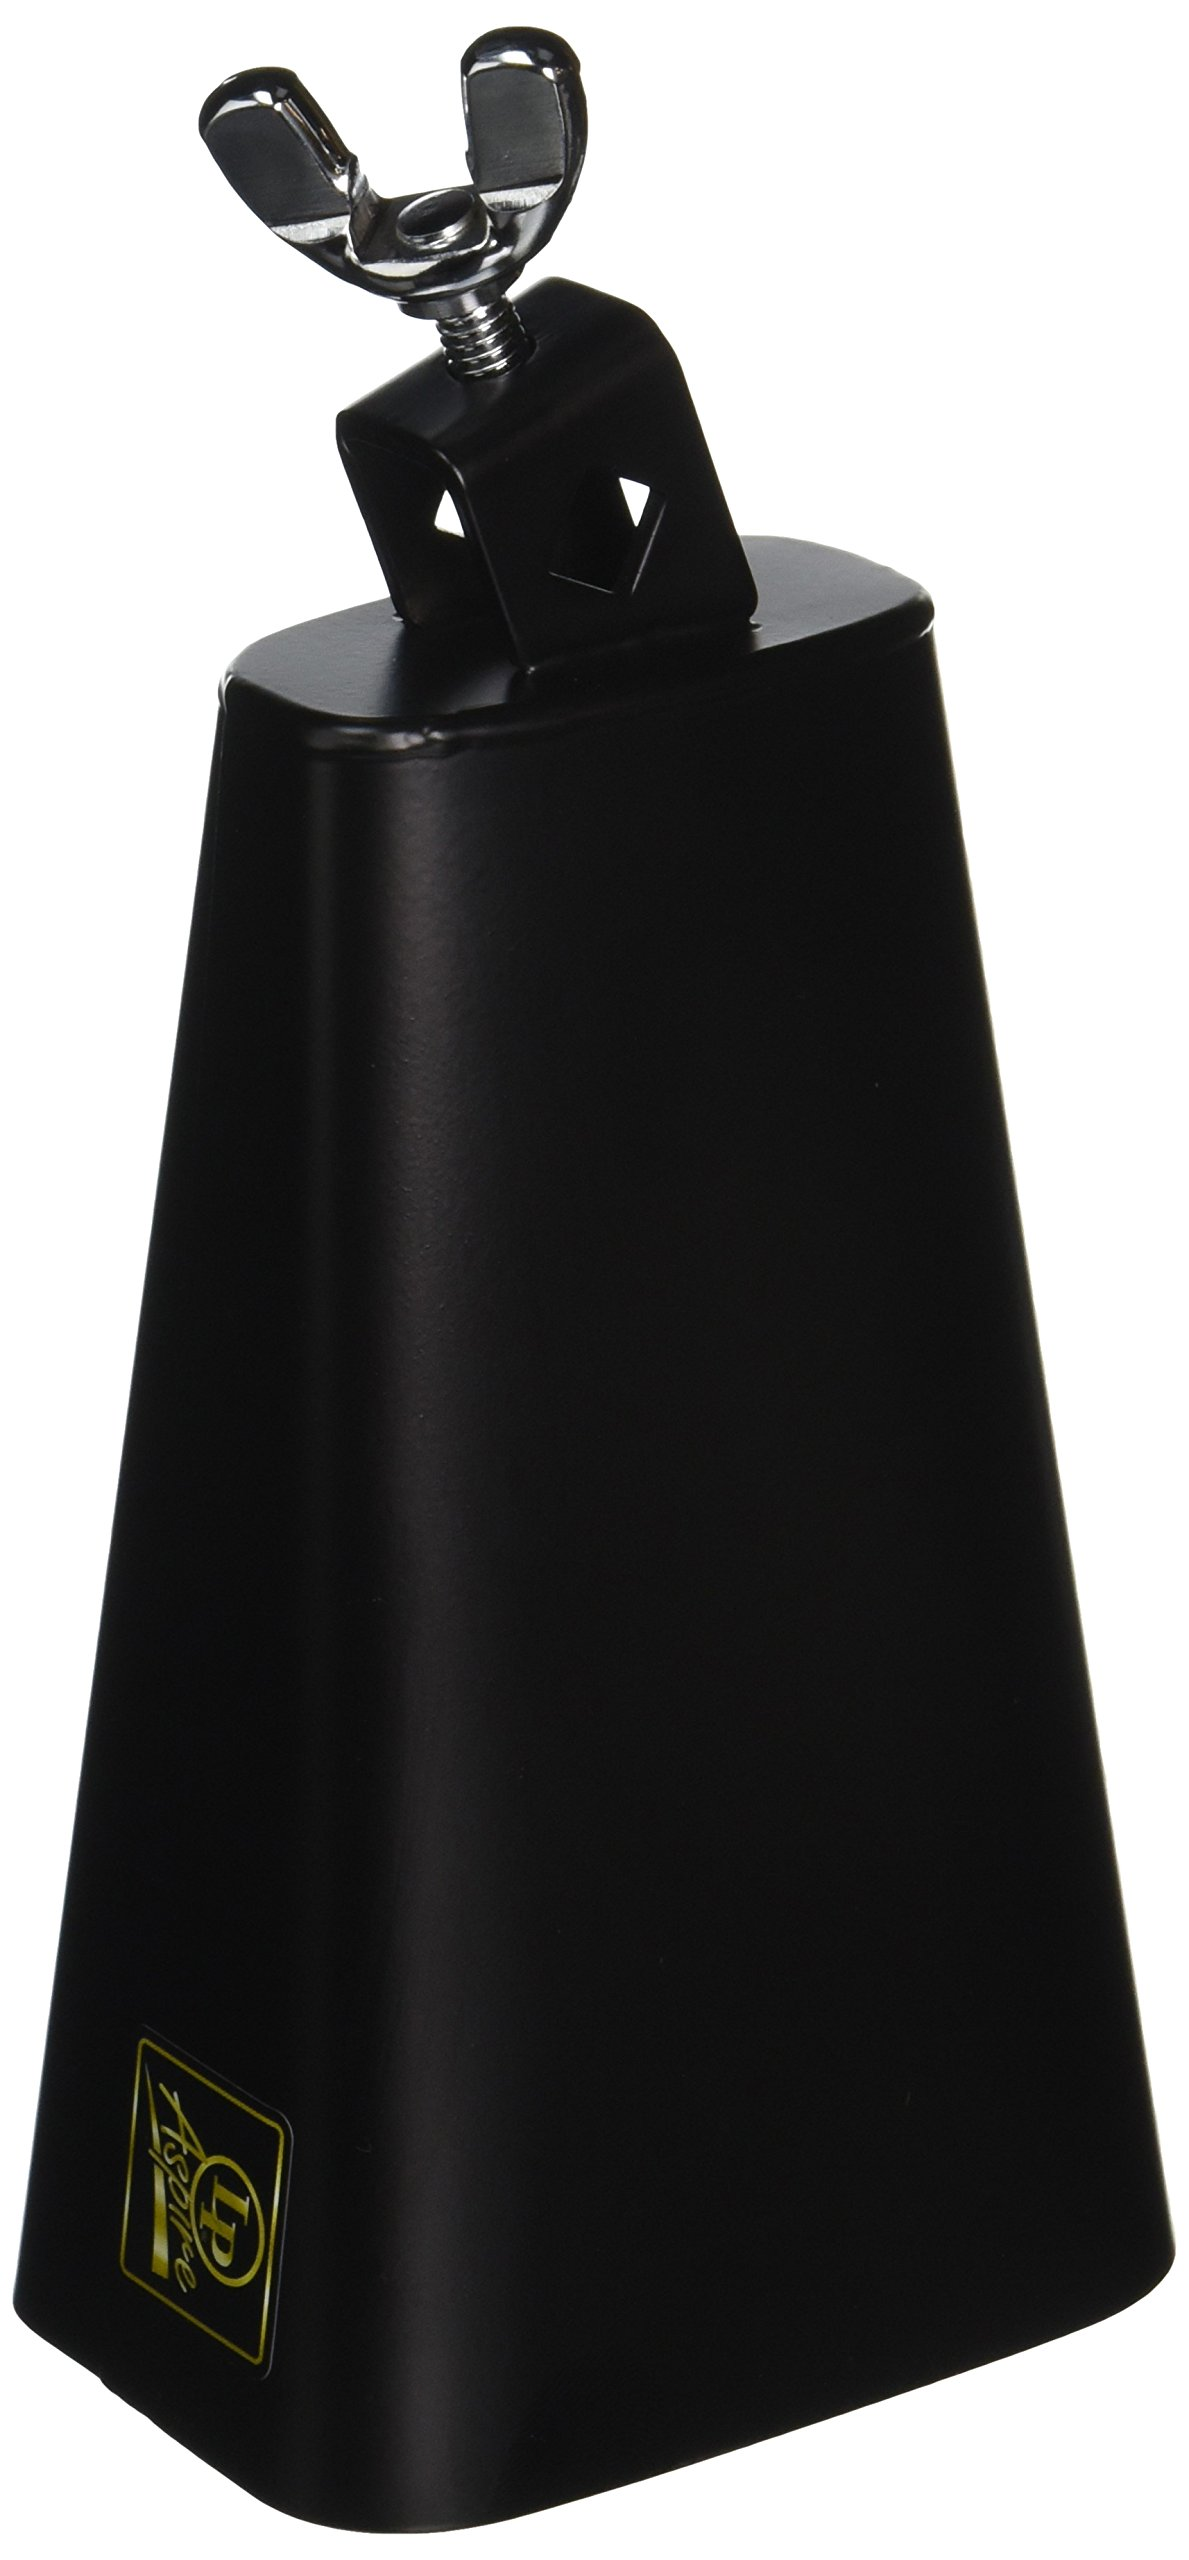 Latin Percussion LPA406 Timbale Cowbell 6 7/8 Inch by Latin Percussion